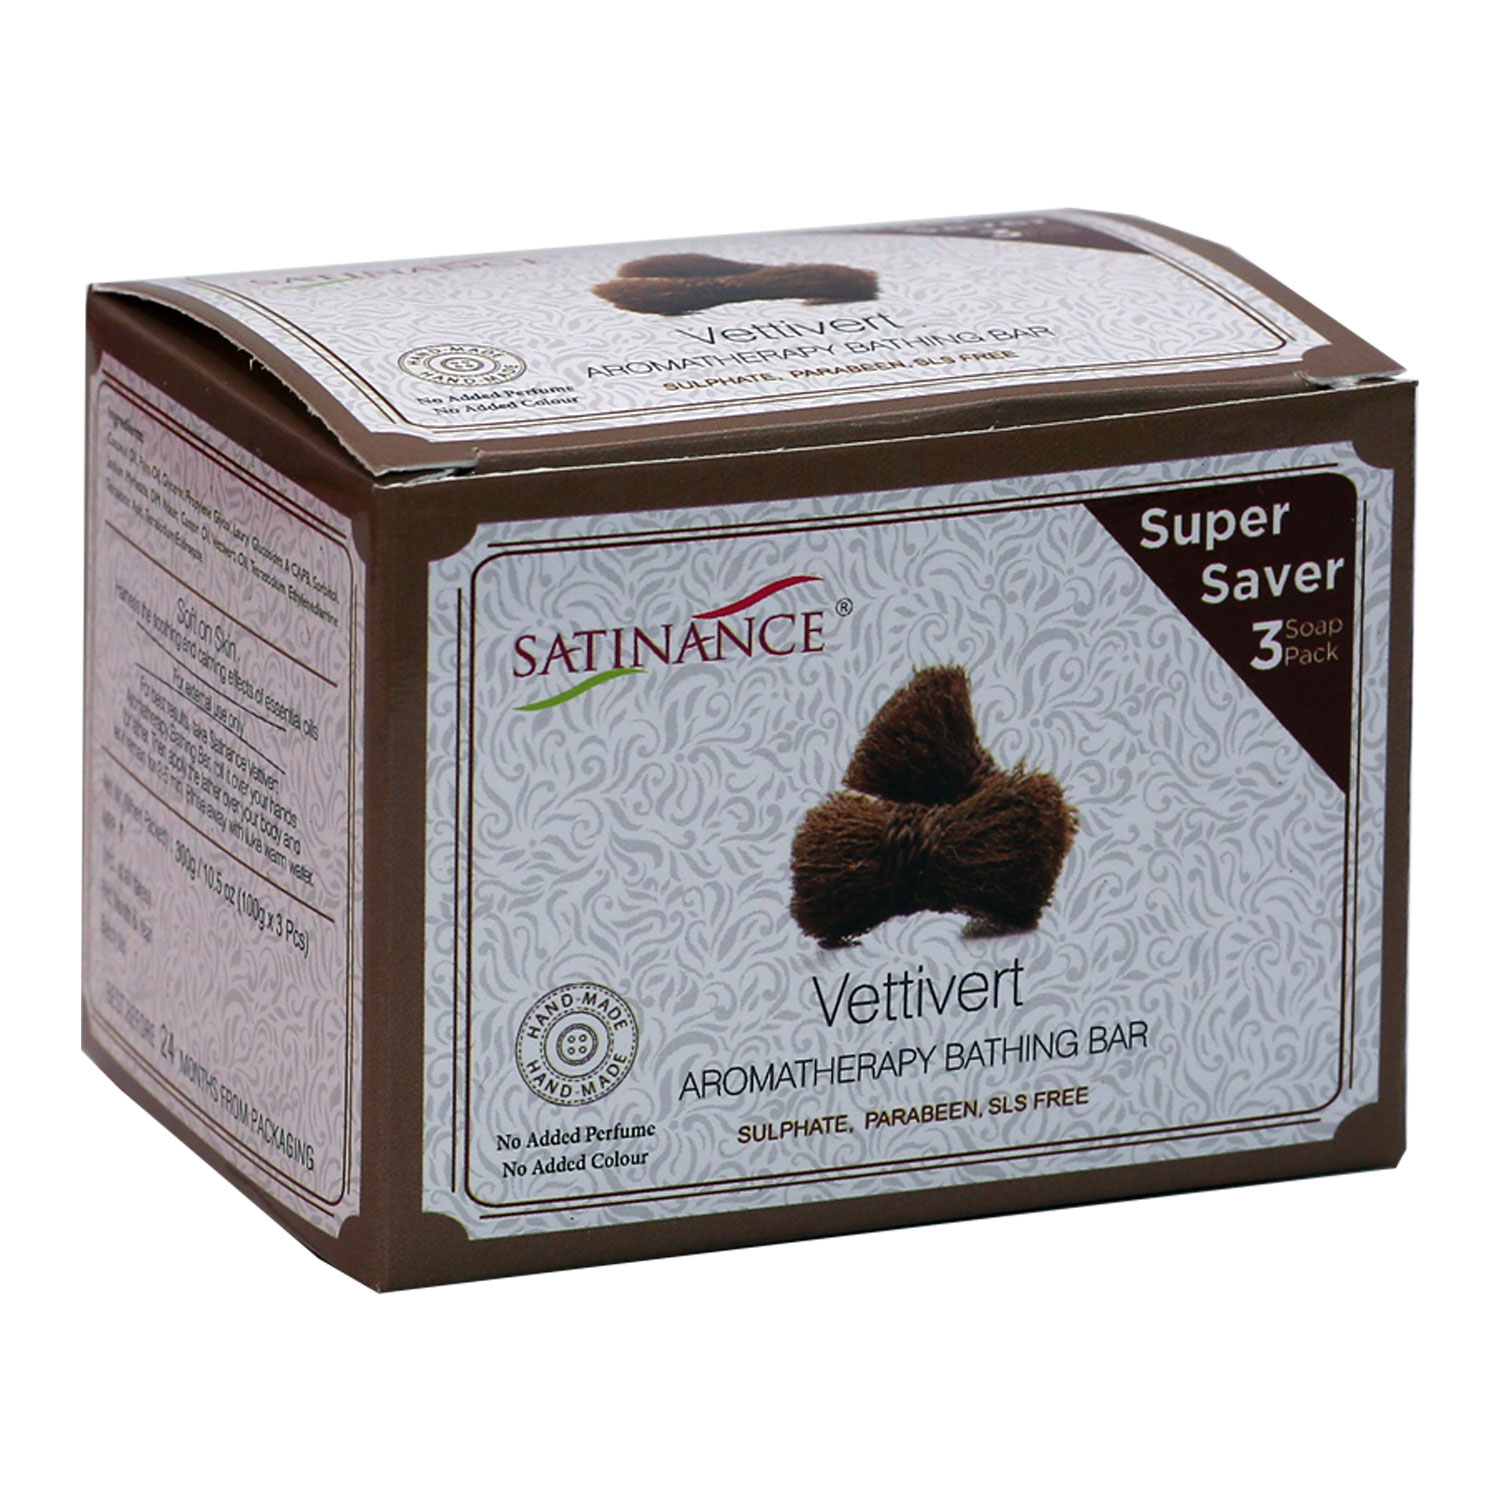 Vettivert Aromatherapy Bathing Bar 300g (100g*3) Super Saver Pack